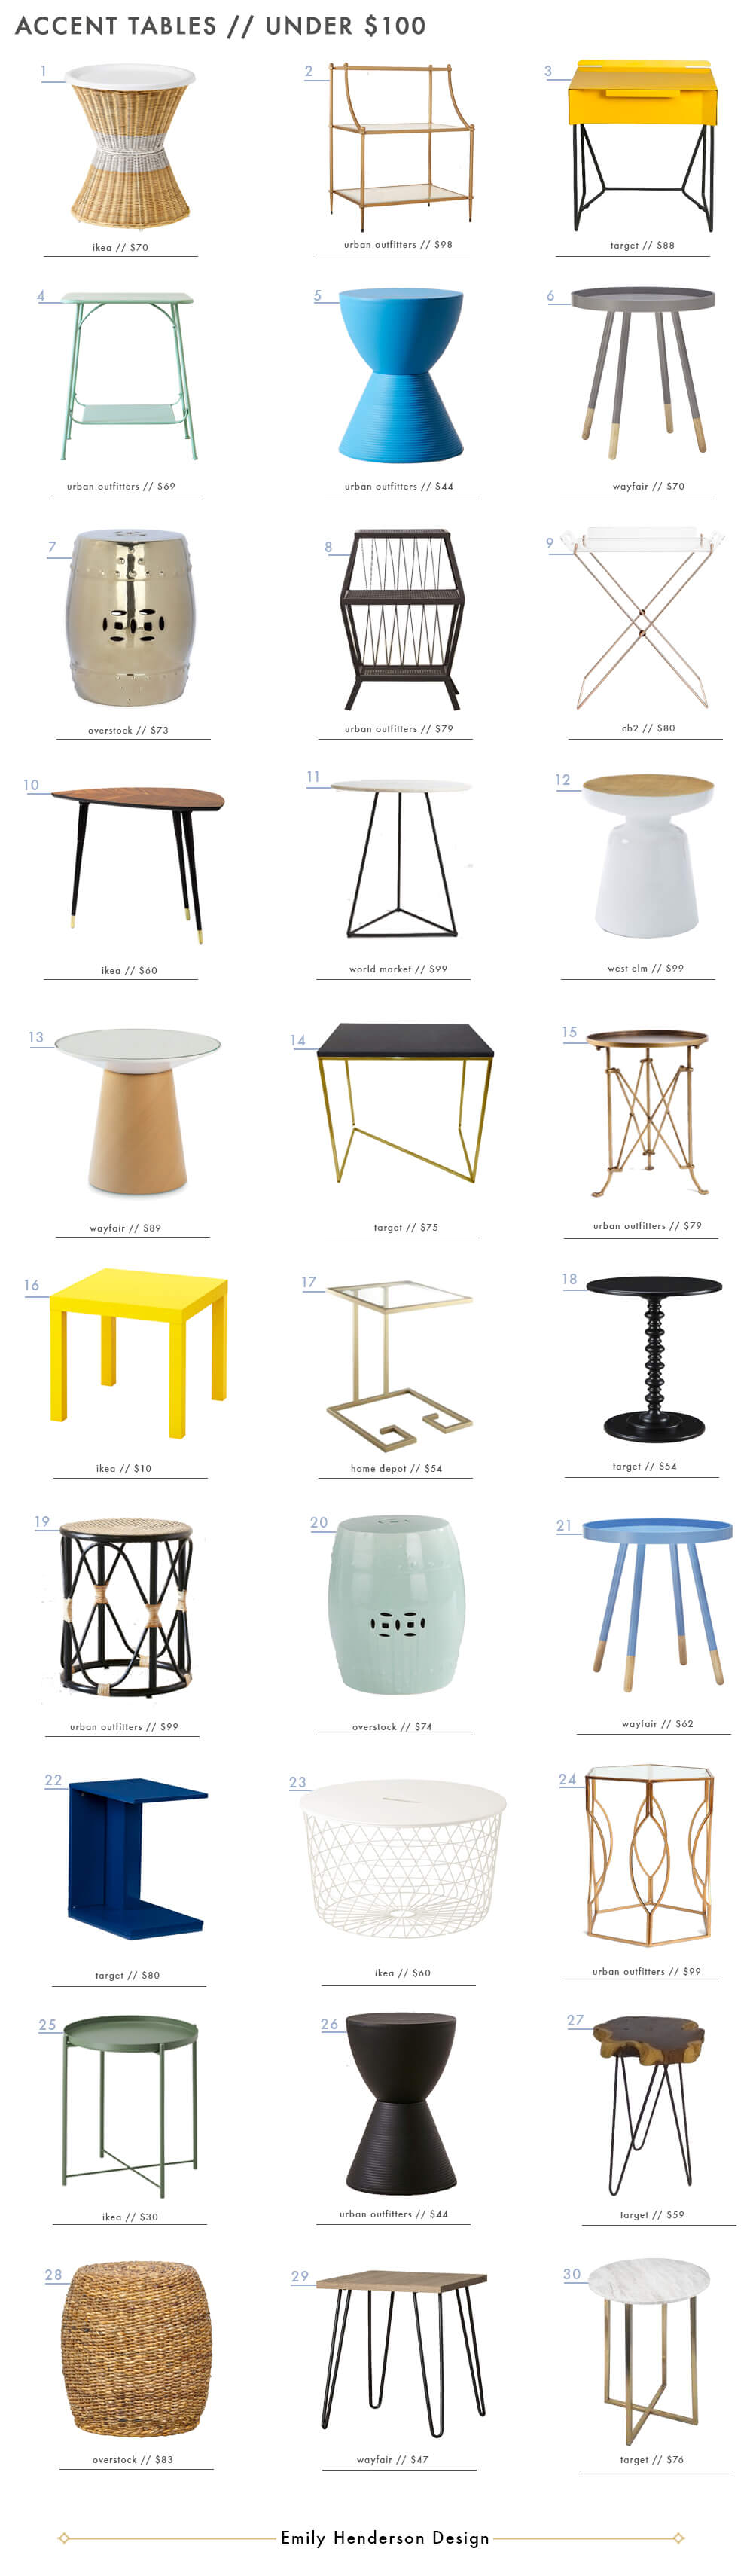 accent tables under emily henderson side small half circle table stainless steel cream round corner chrome coffee legs west elm payment black glass pair white wood end canvas